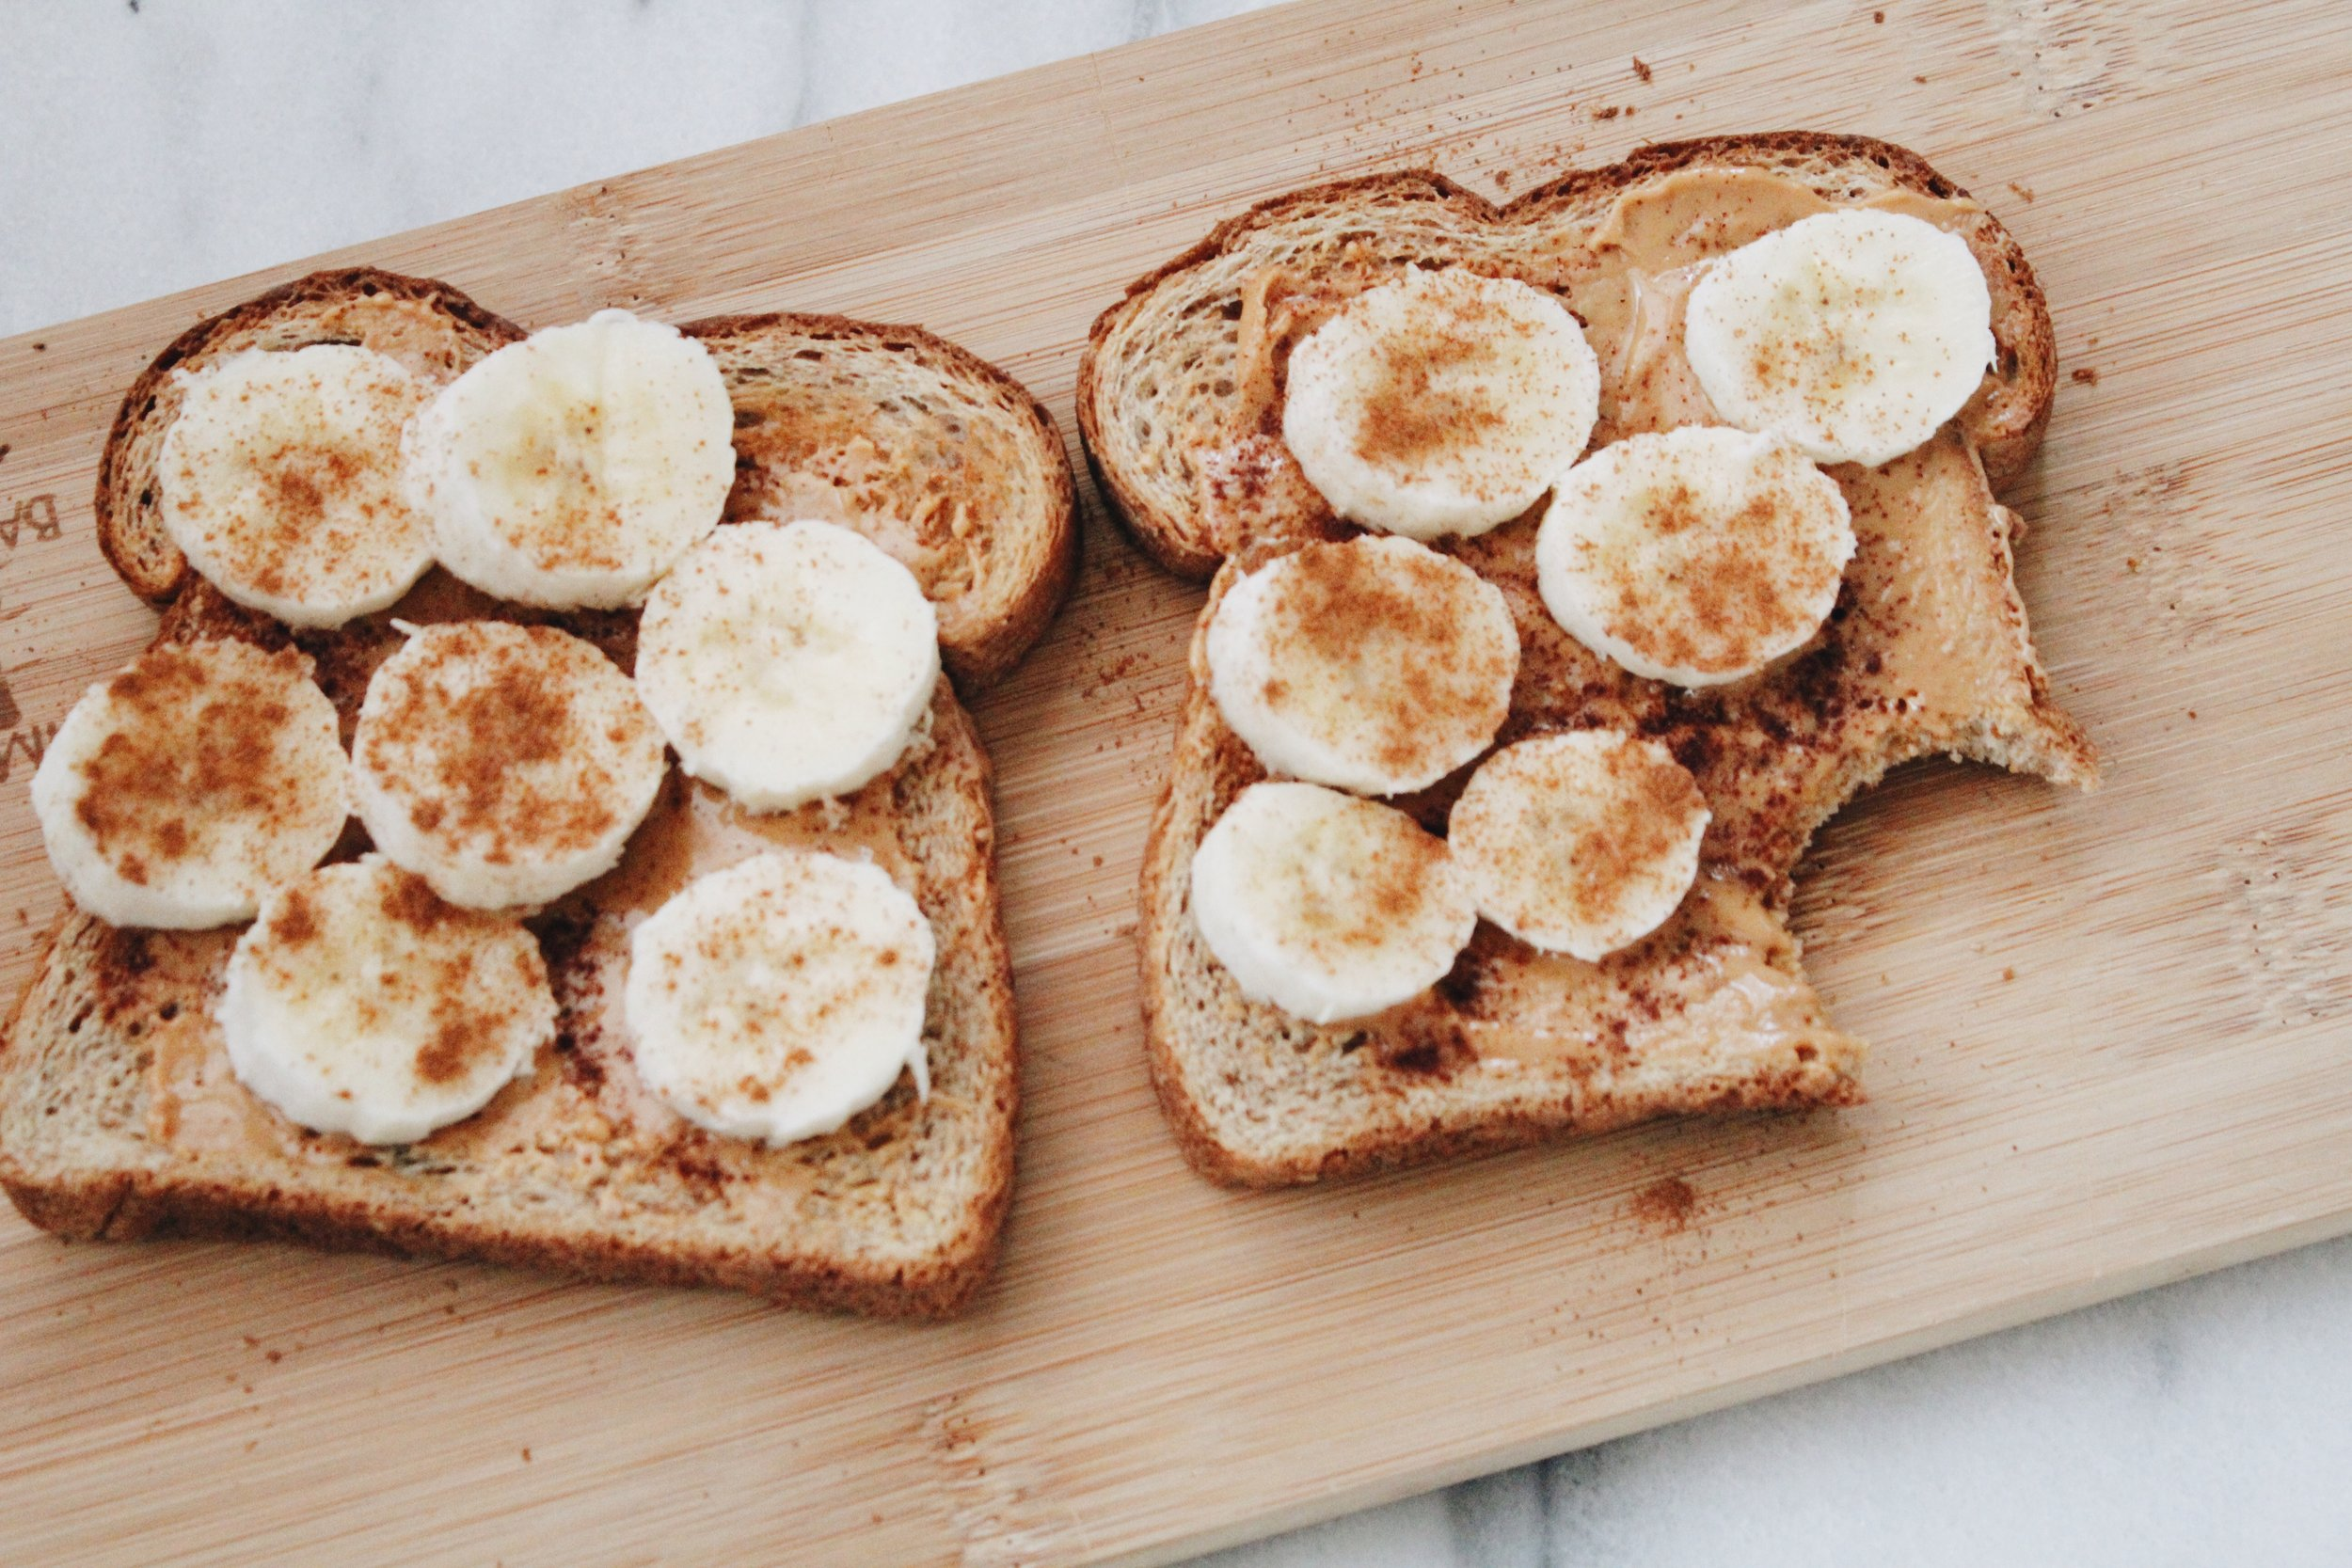 Peanut butter toast with banana slices and cinnamon